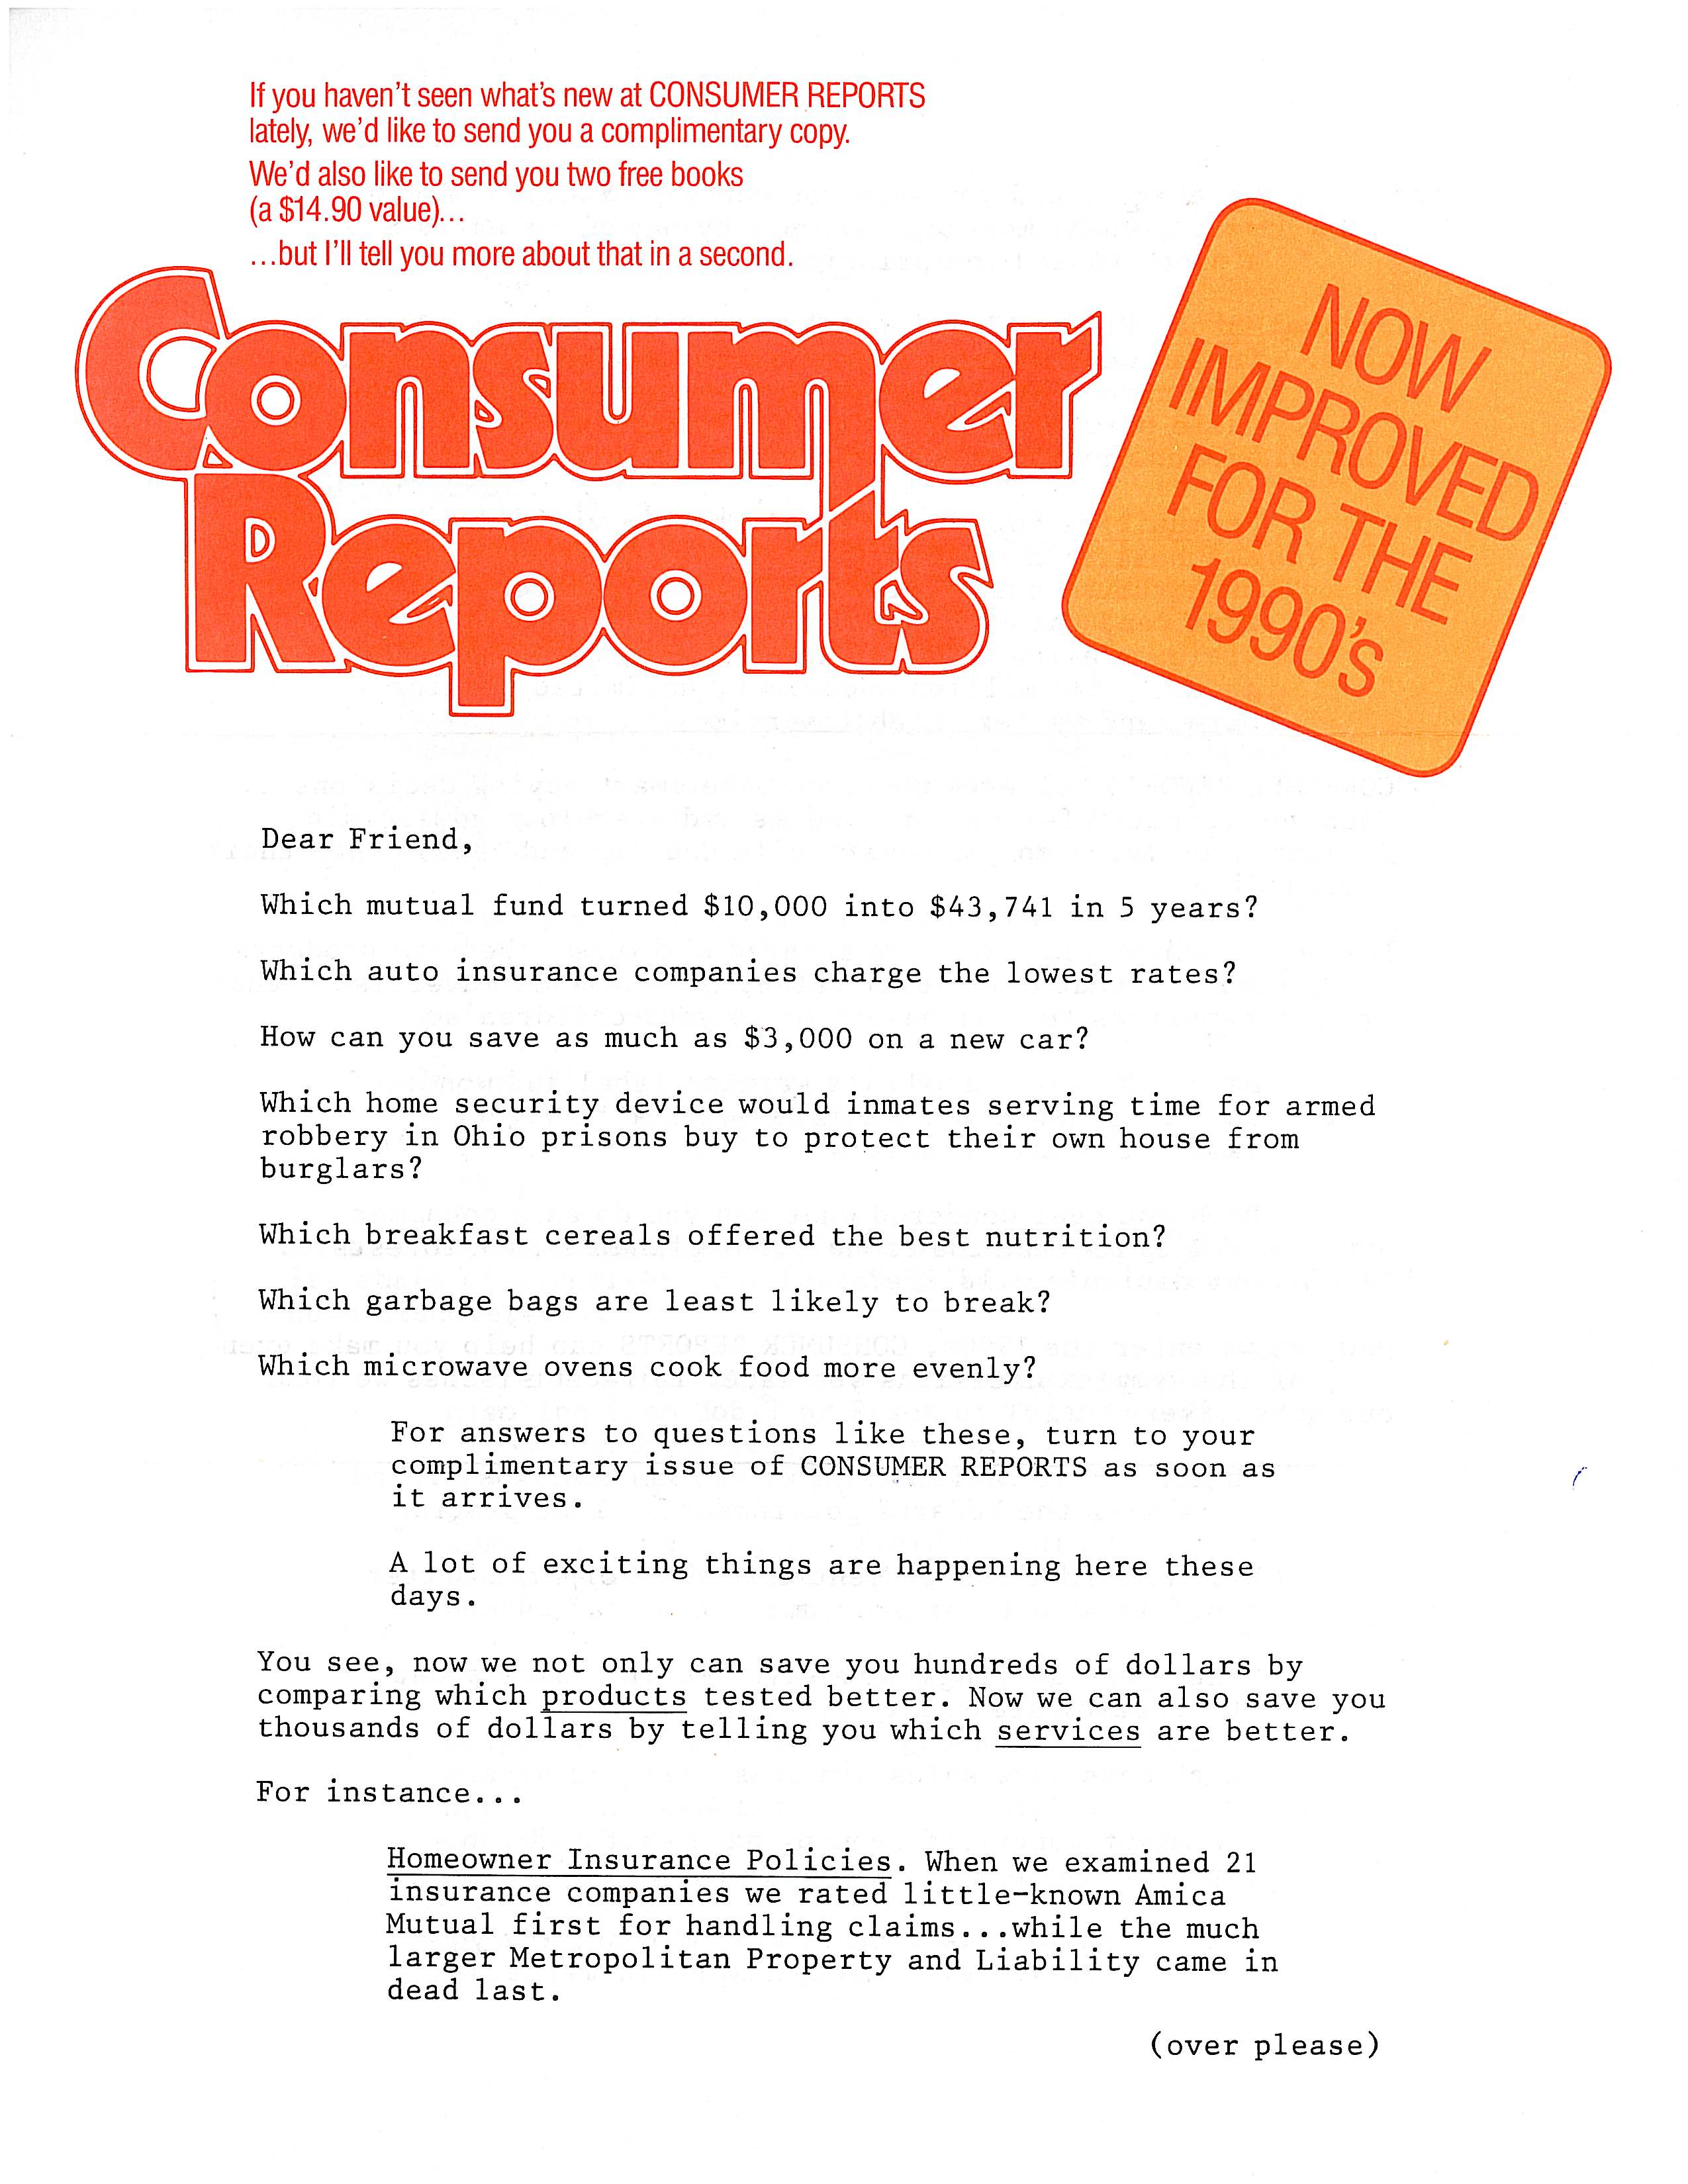 image of Consumer Reports direct mail sales letter page 1